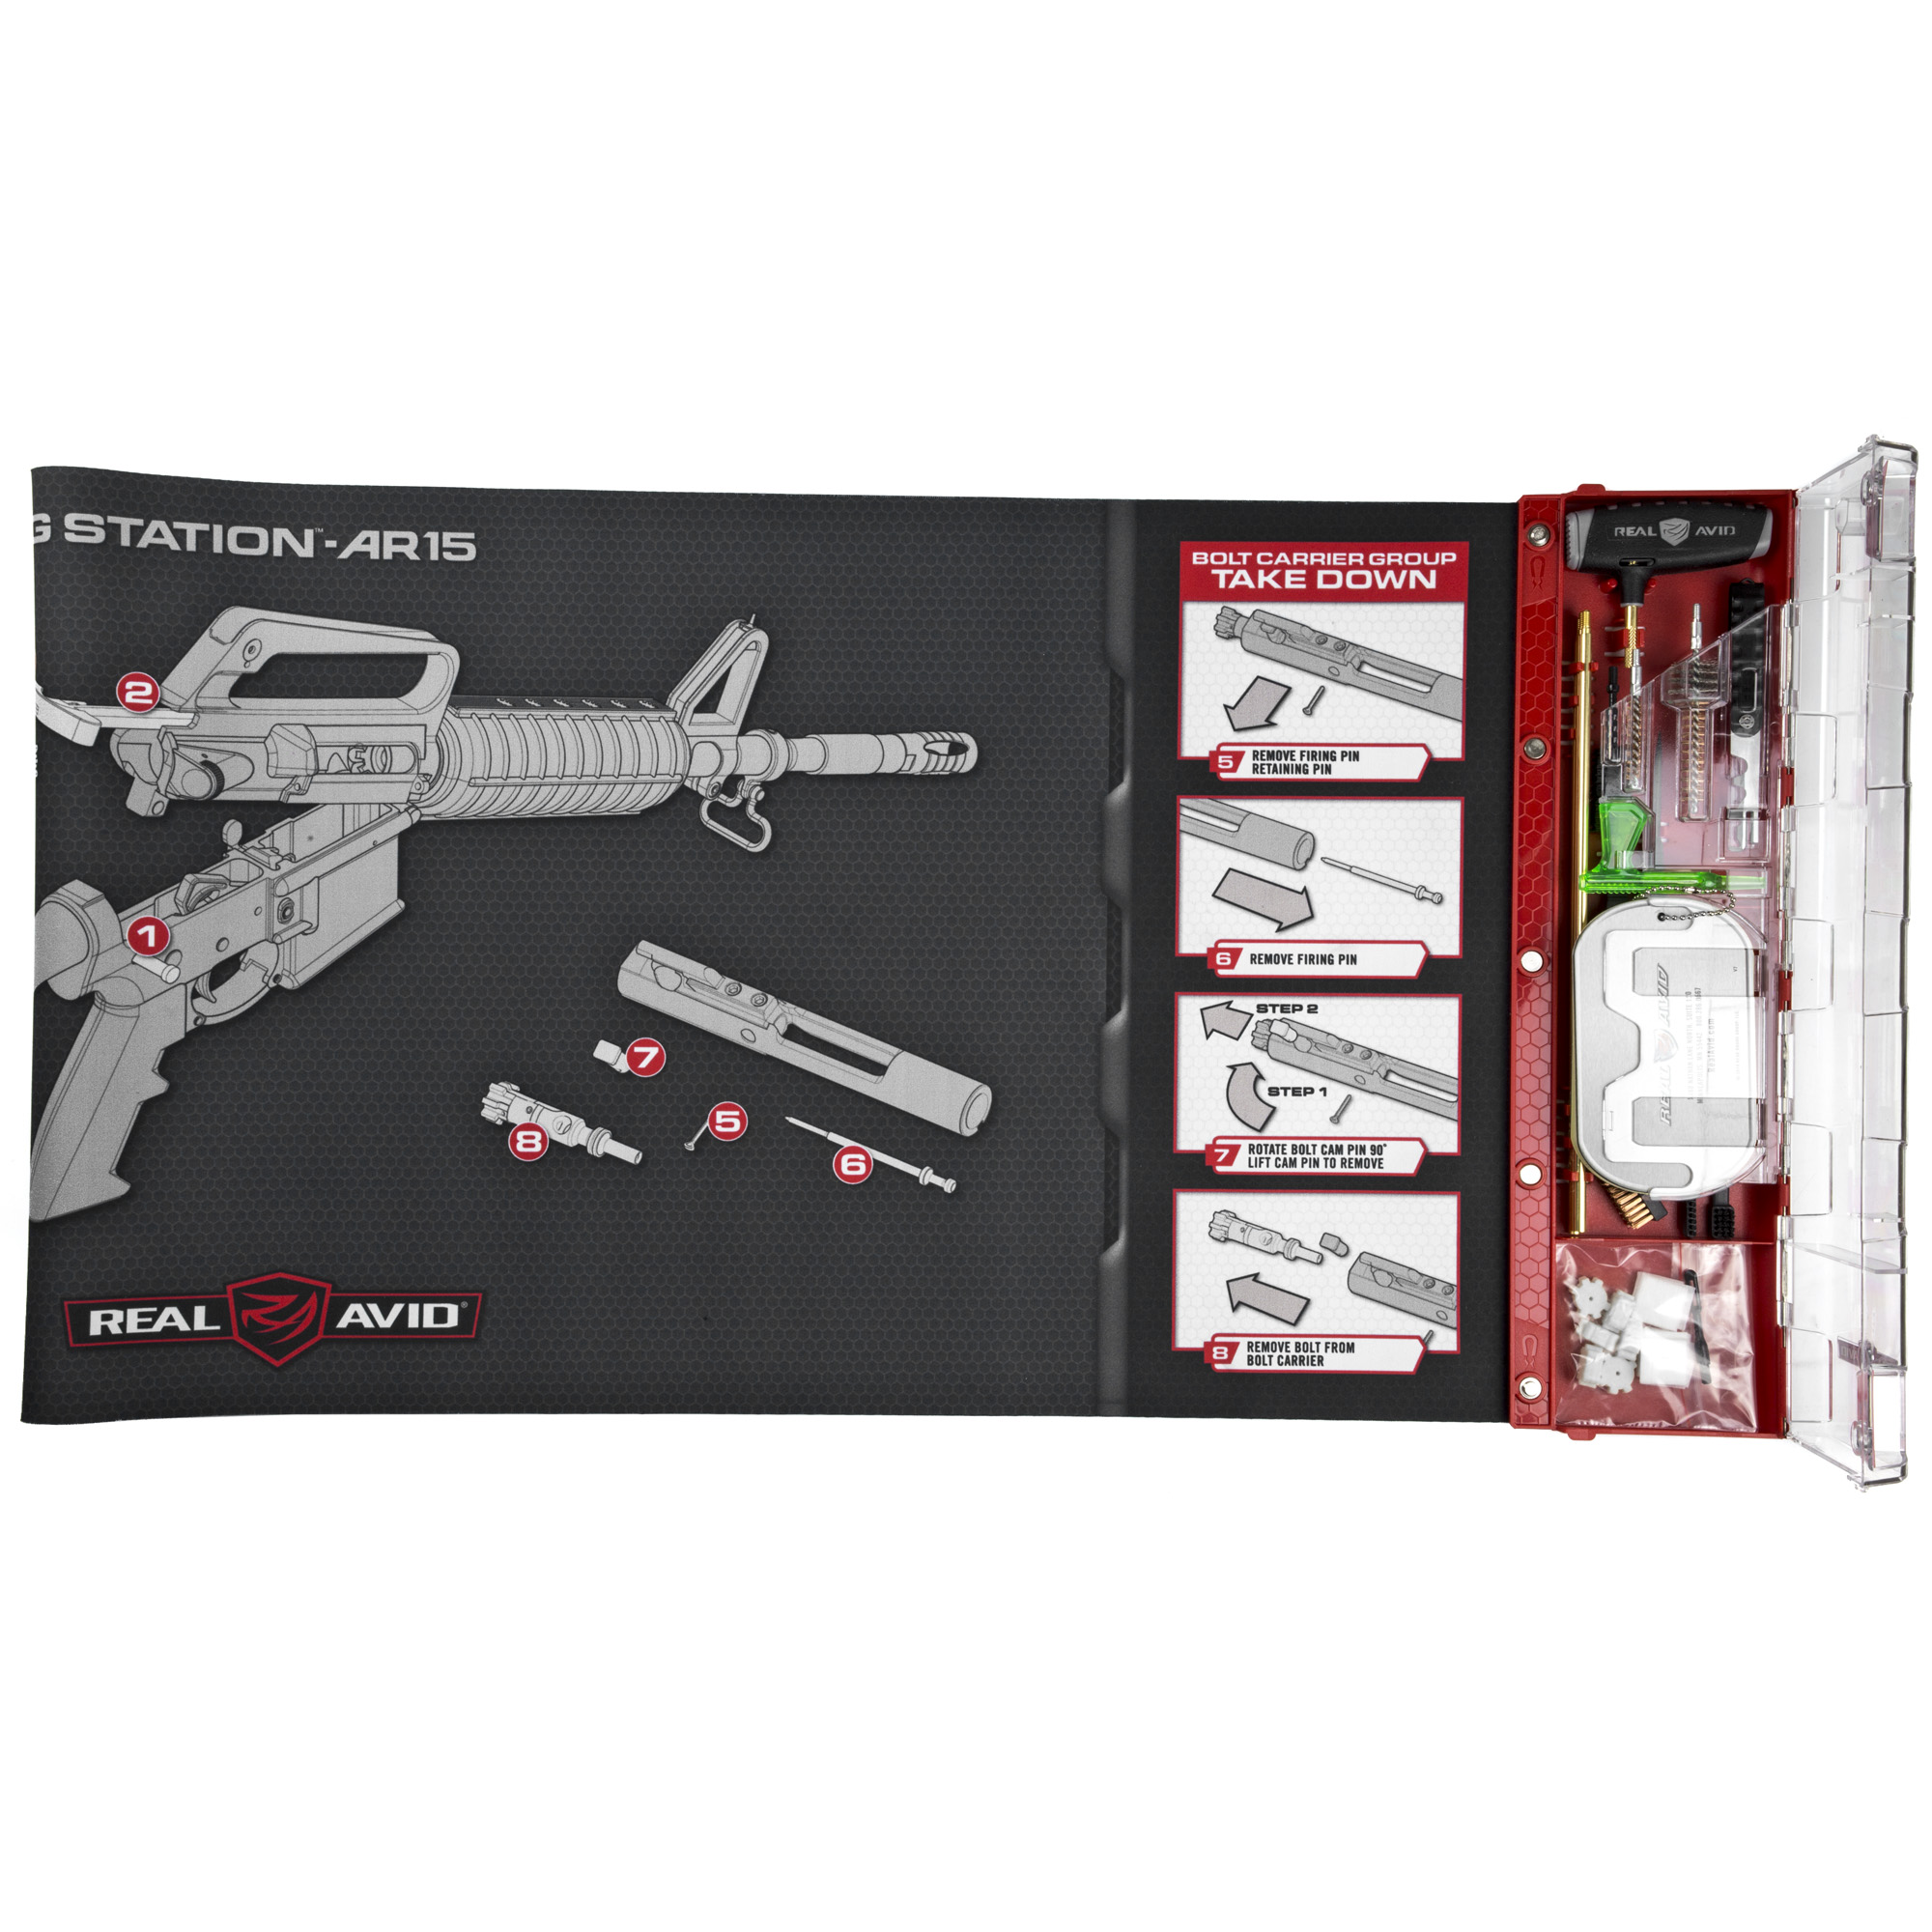 "Upgrade your cleaning experience with the world's first AR15 Master Cleaning Station. Designed for comprehensive cleaning of AR15s. It combines a Next-Gen cleaning mat with an intelligently designed cleaning kit filled with an extensive set of AR15 cleaning tools. It provides how-to cleaning and maintenance instruction and keeps easy-to-lose gun parts organized while you work. Provides a huge work area for a completely disassembled gun"" yet rolls up for compact storage in the included bag."